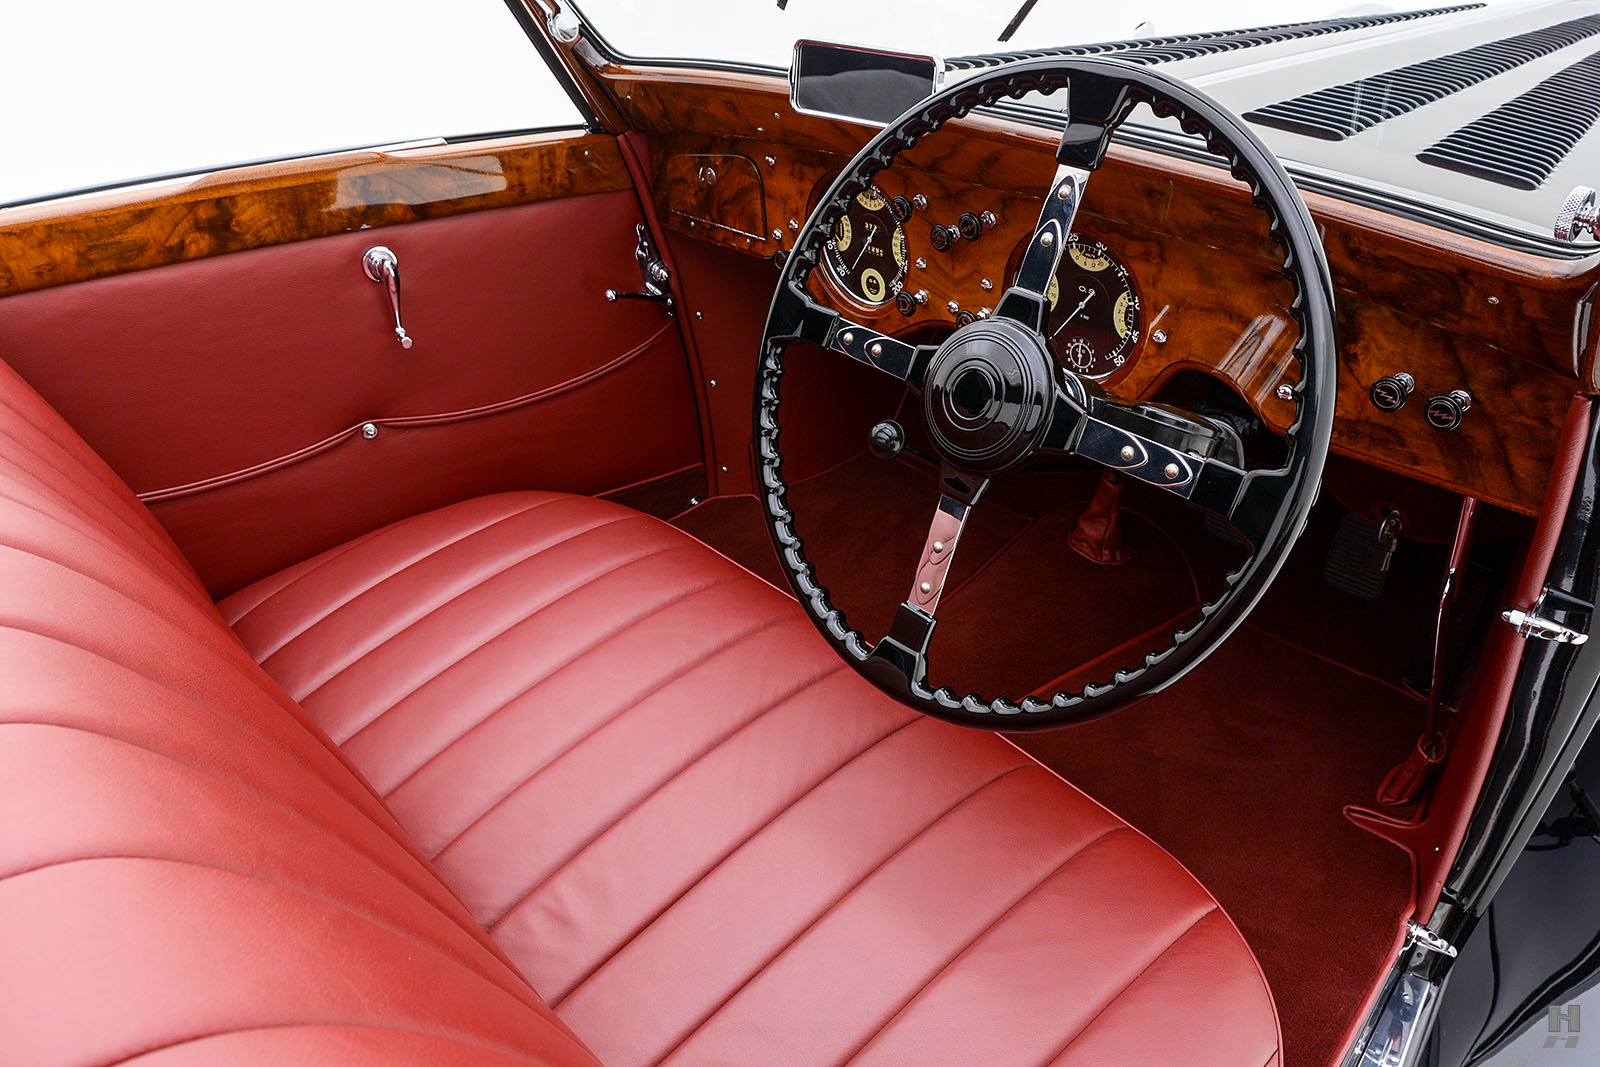 1937 DELAHAYE 135 COUPE DES ALPES For Sale (picture 4 of 6)